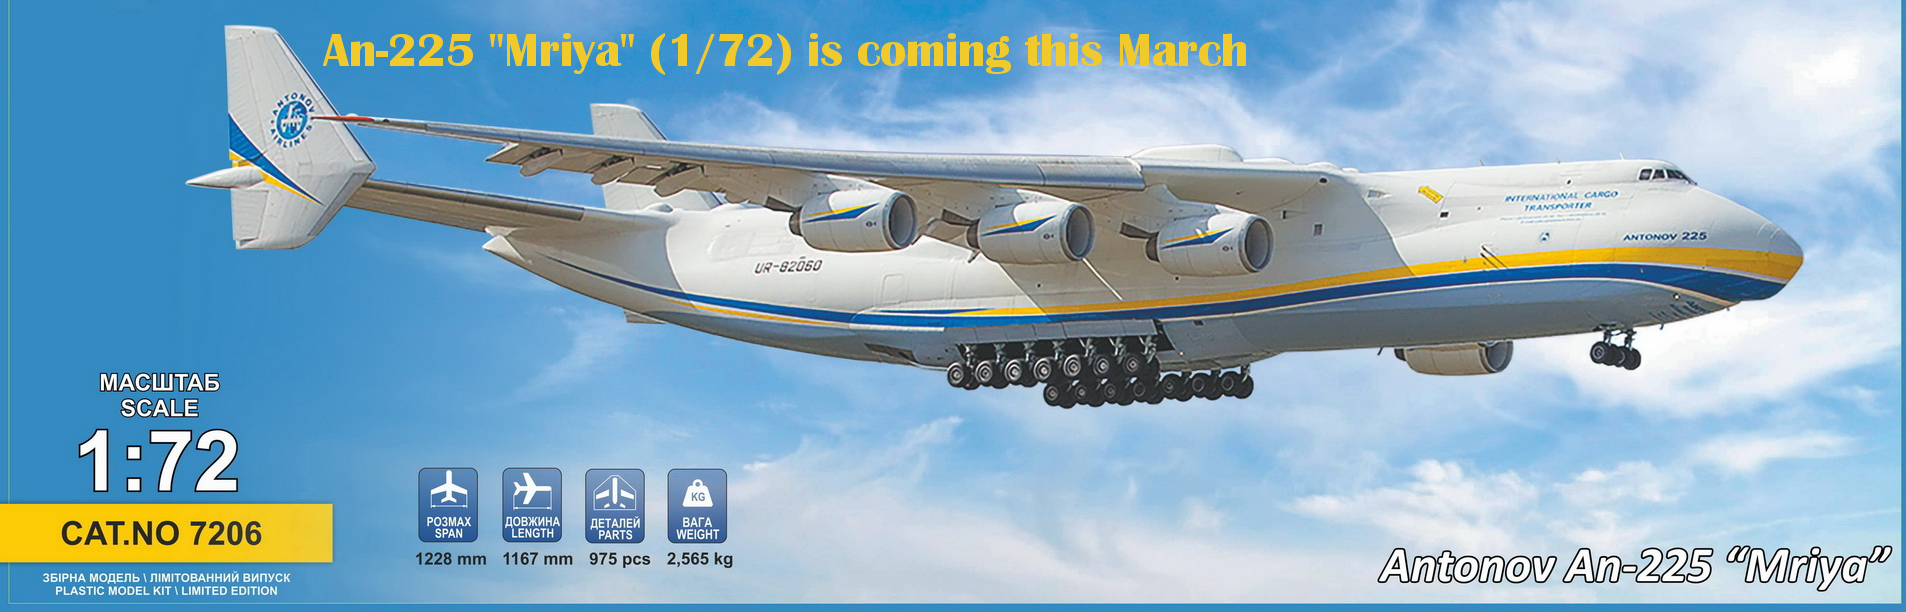 "An-225 ""Mriya"" is coming this March"